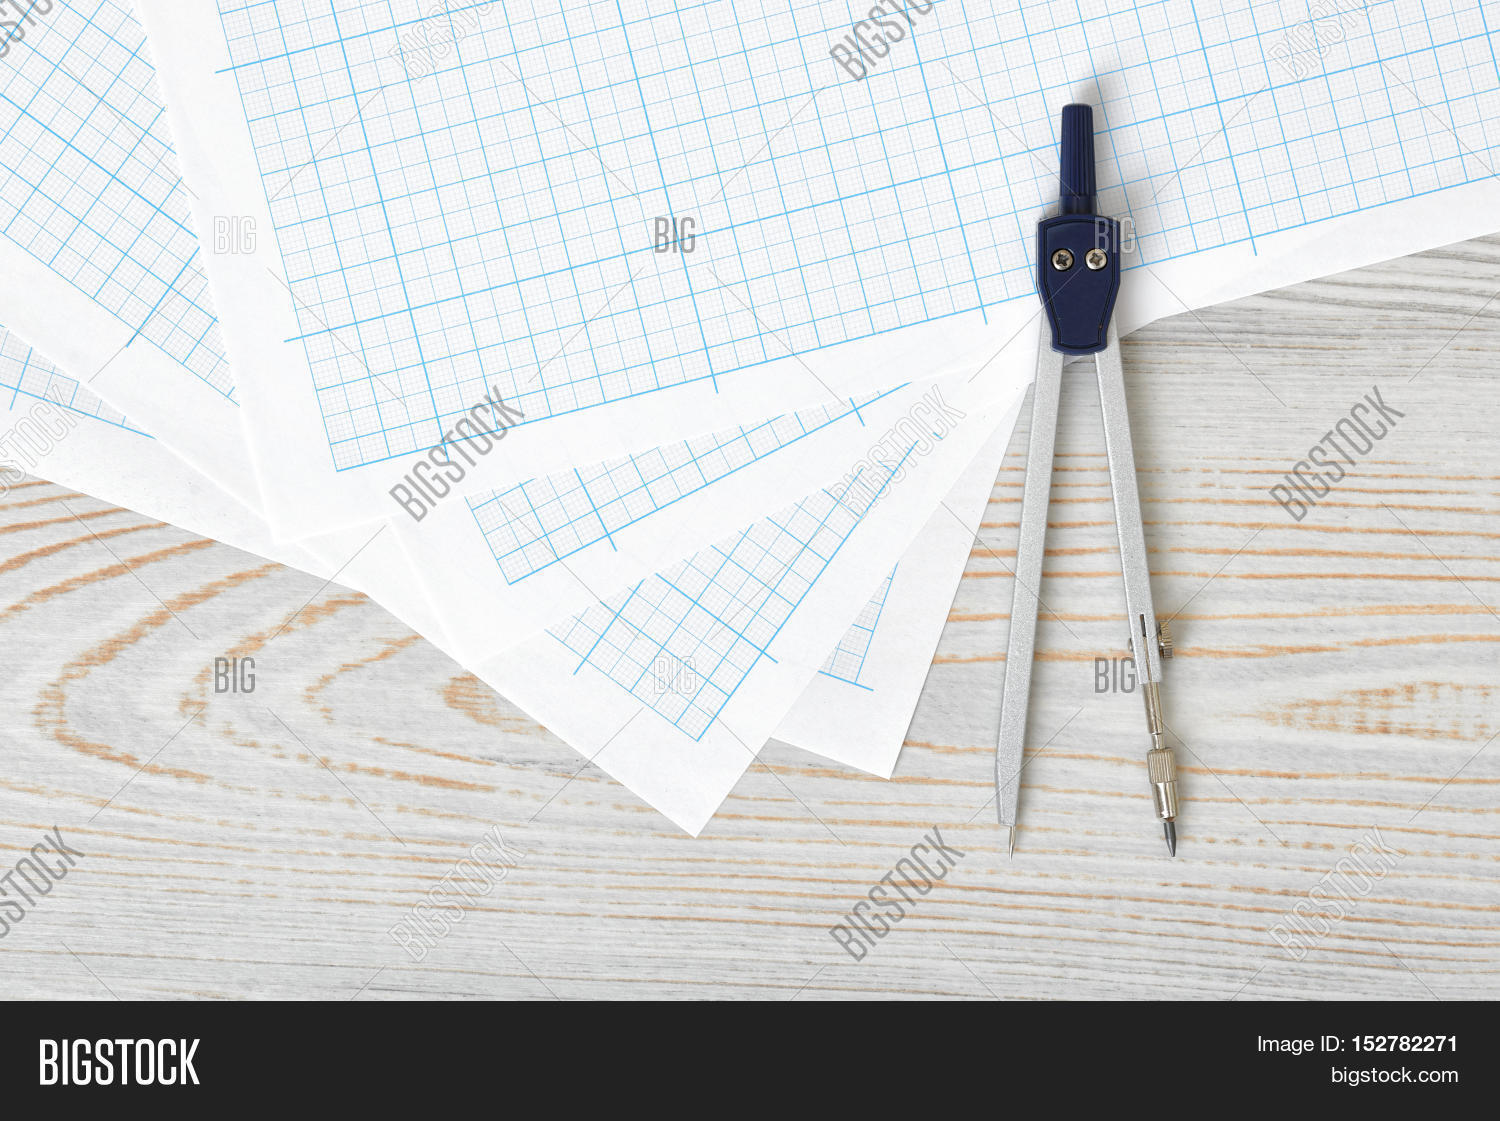 compass on graph paper image photo free trial bigstock